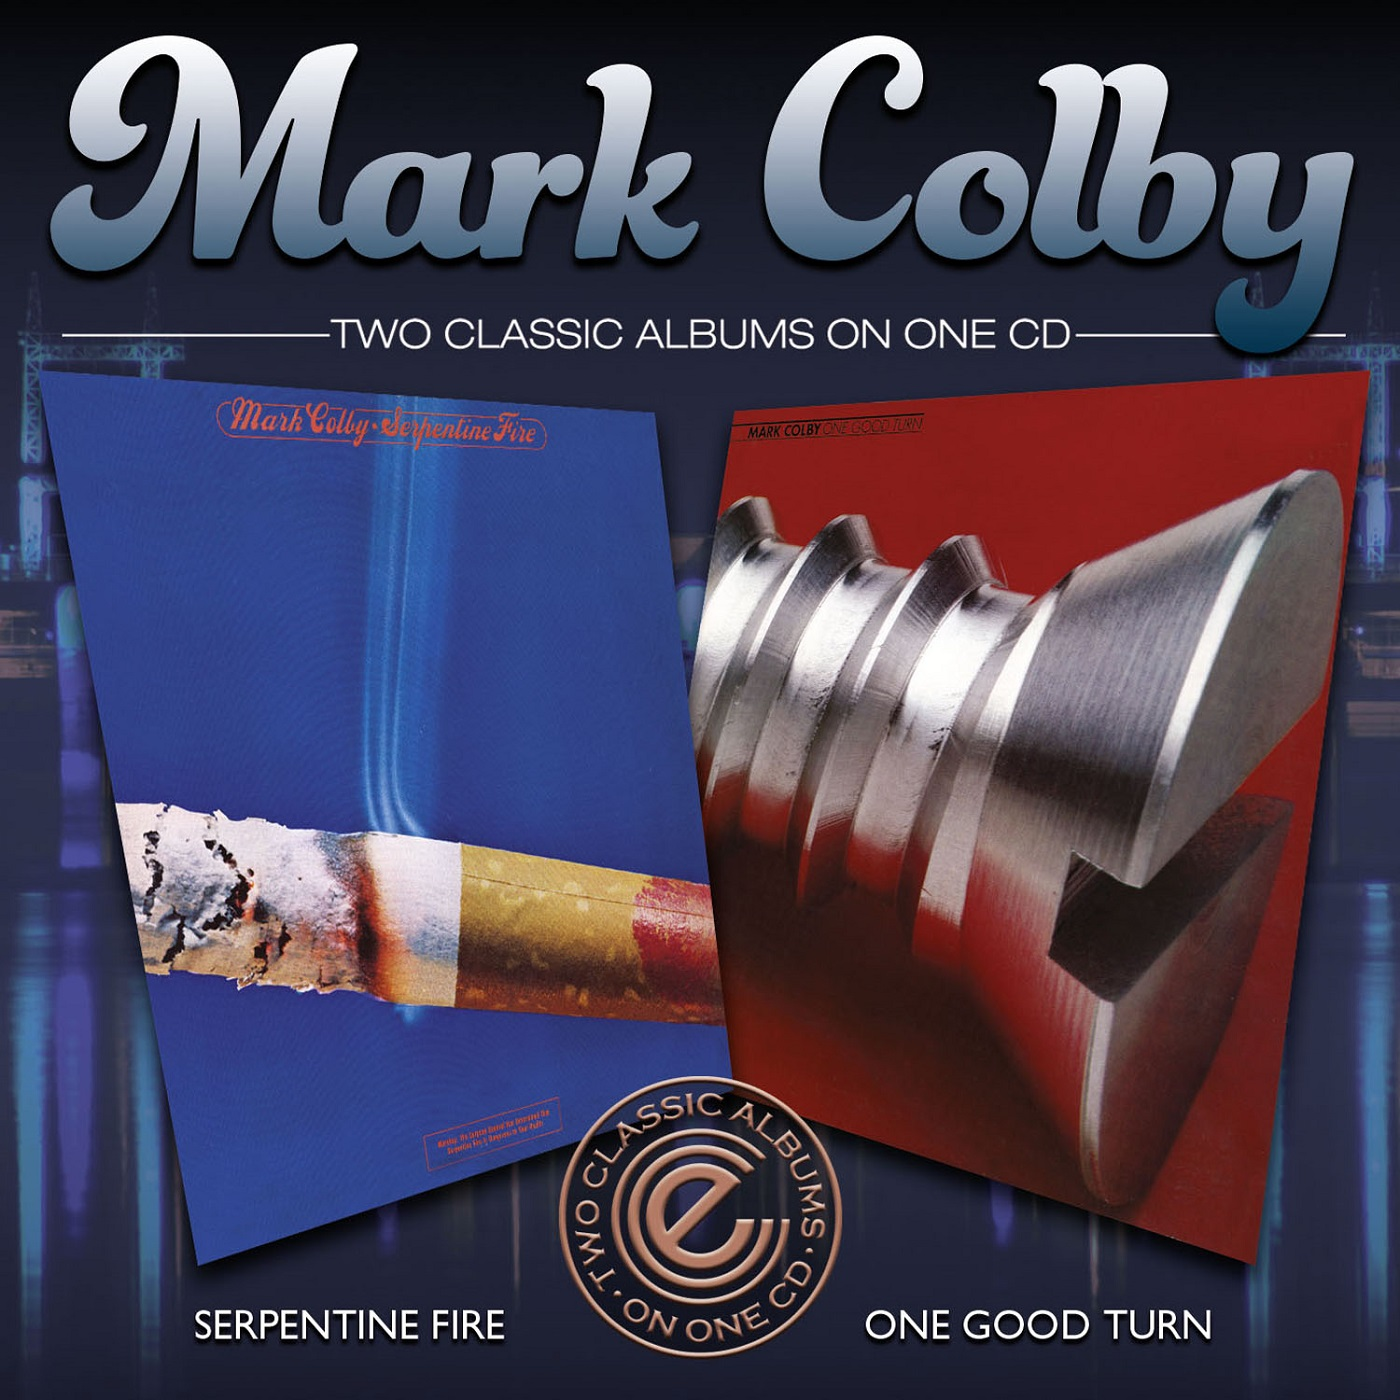 Mark Colby/SERPENTINE FIRE & ONE GOOD CD